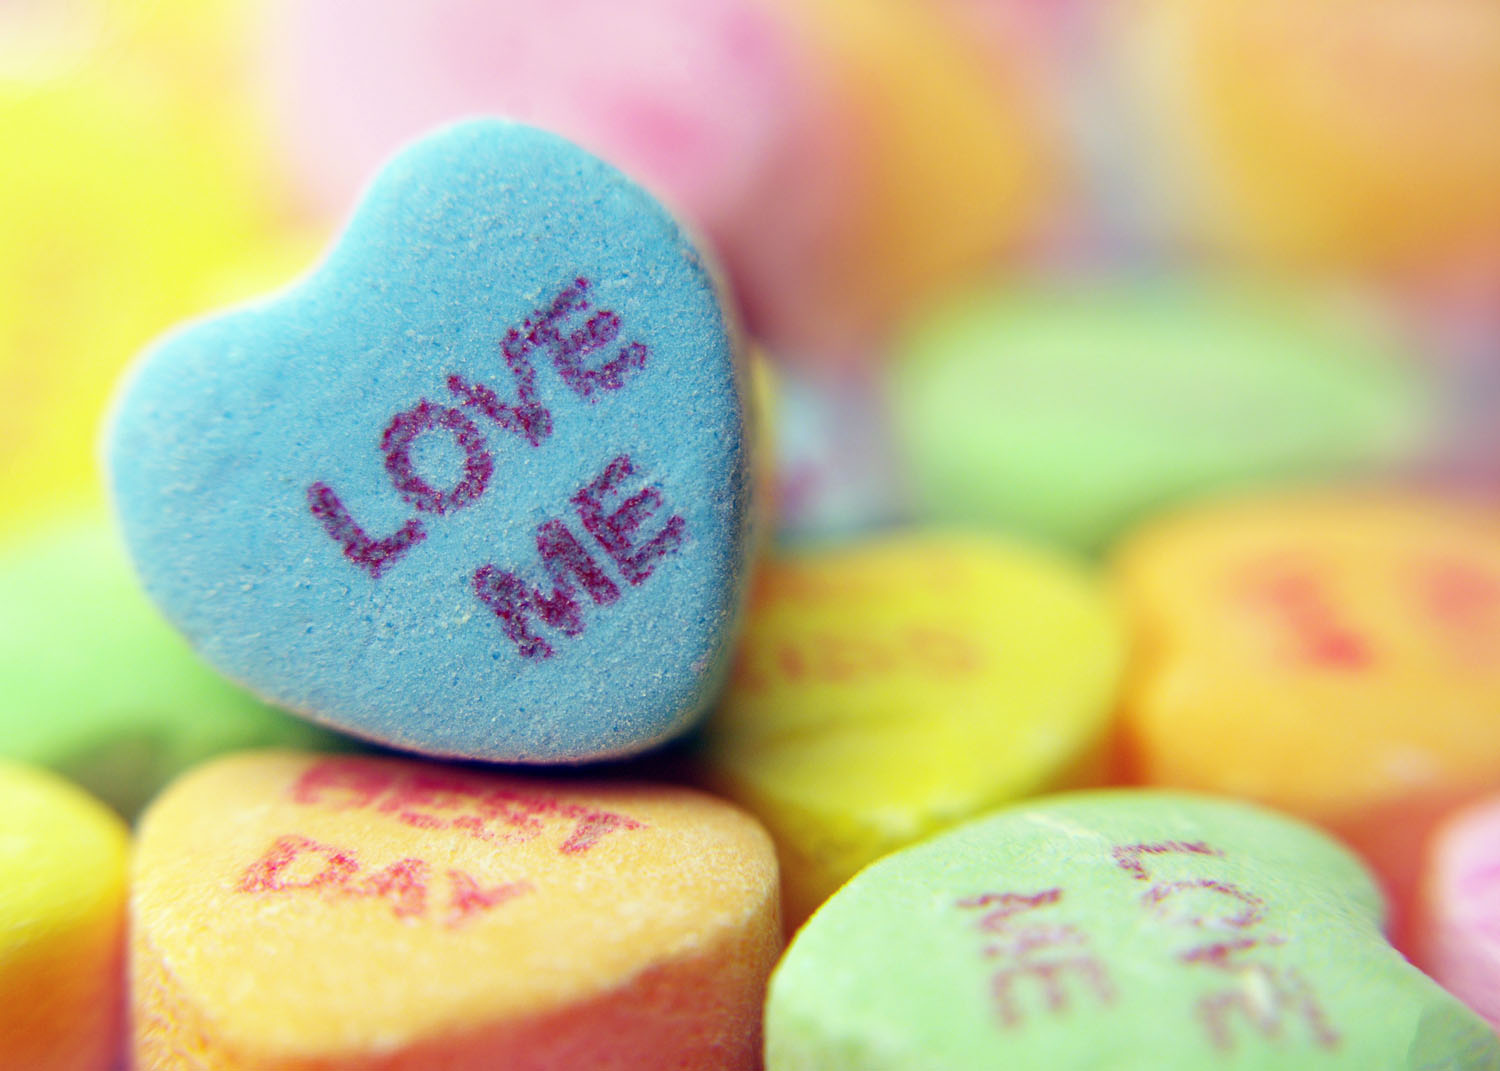 009 Essay Example Candy Hearts Love Modern Phenomenal Essays Contest Winner Amy Rosenthal Full